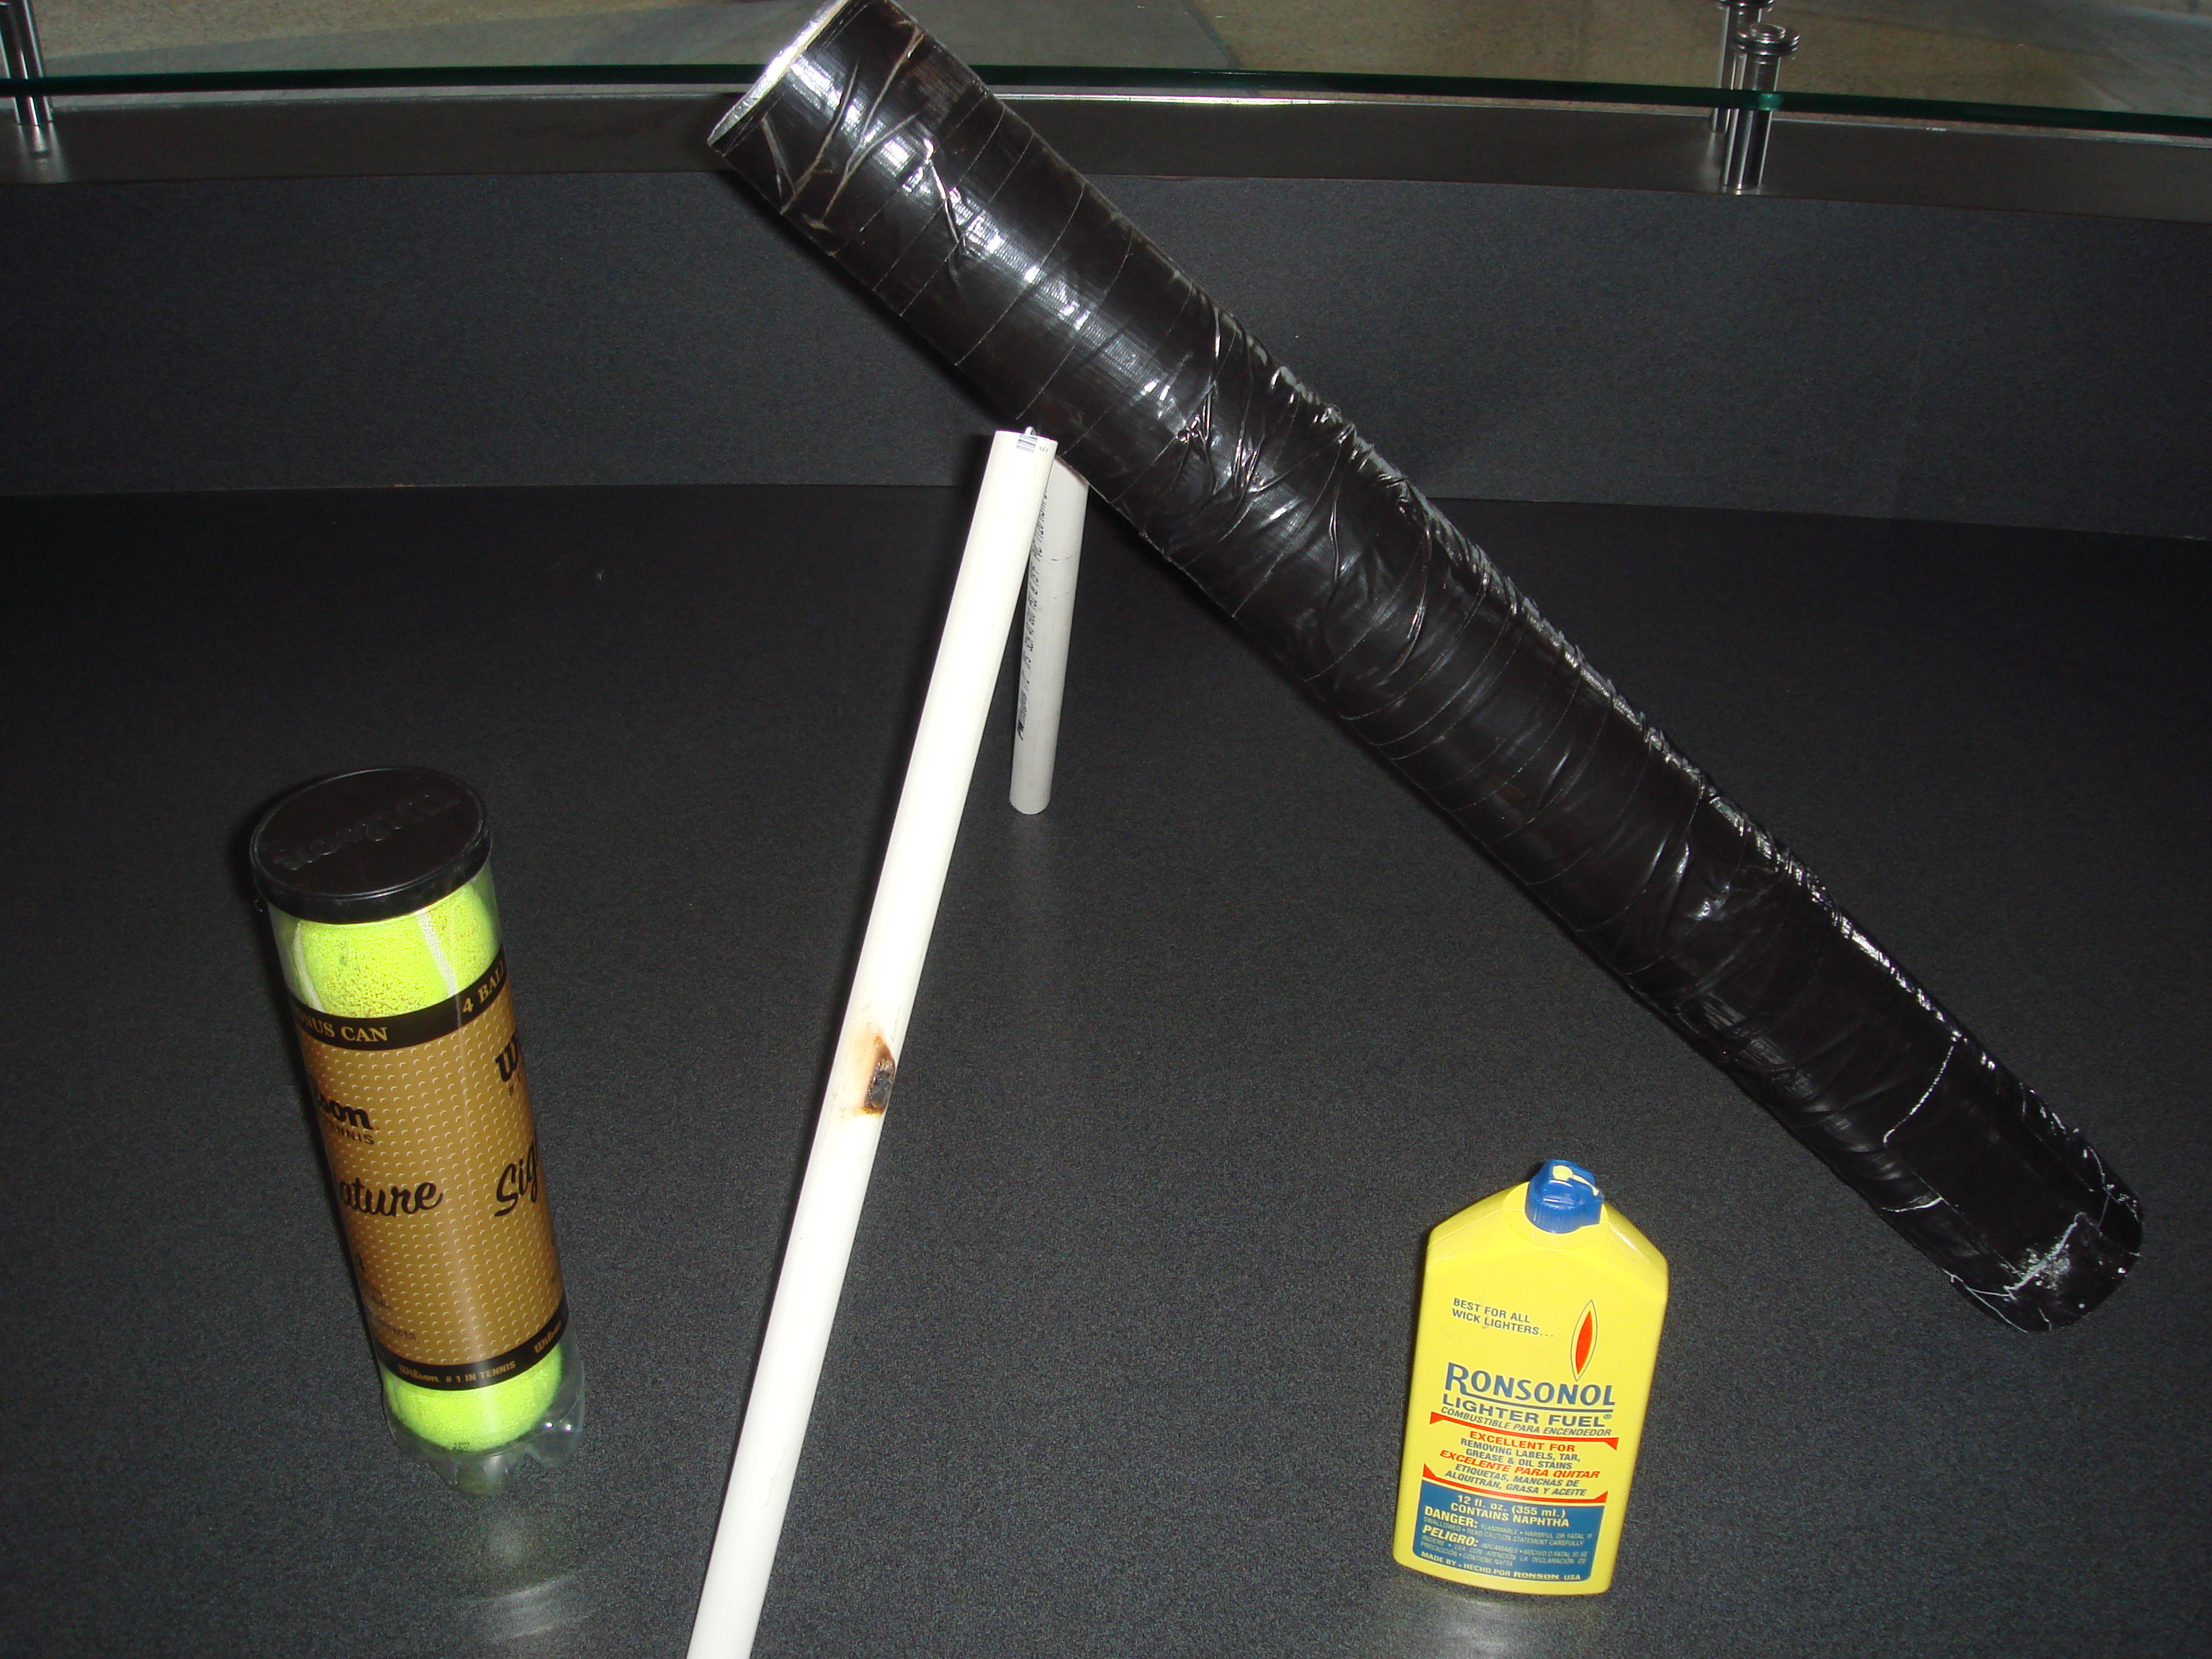 Tennis Ball Mortar